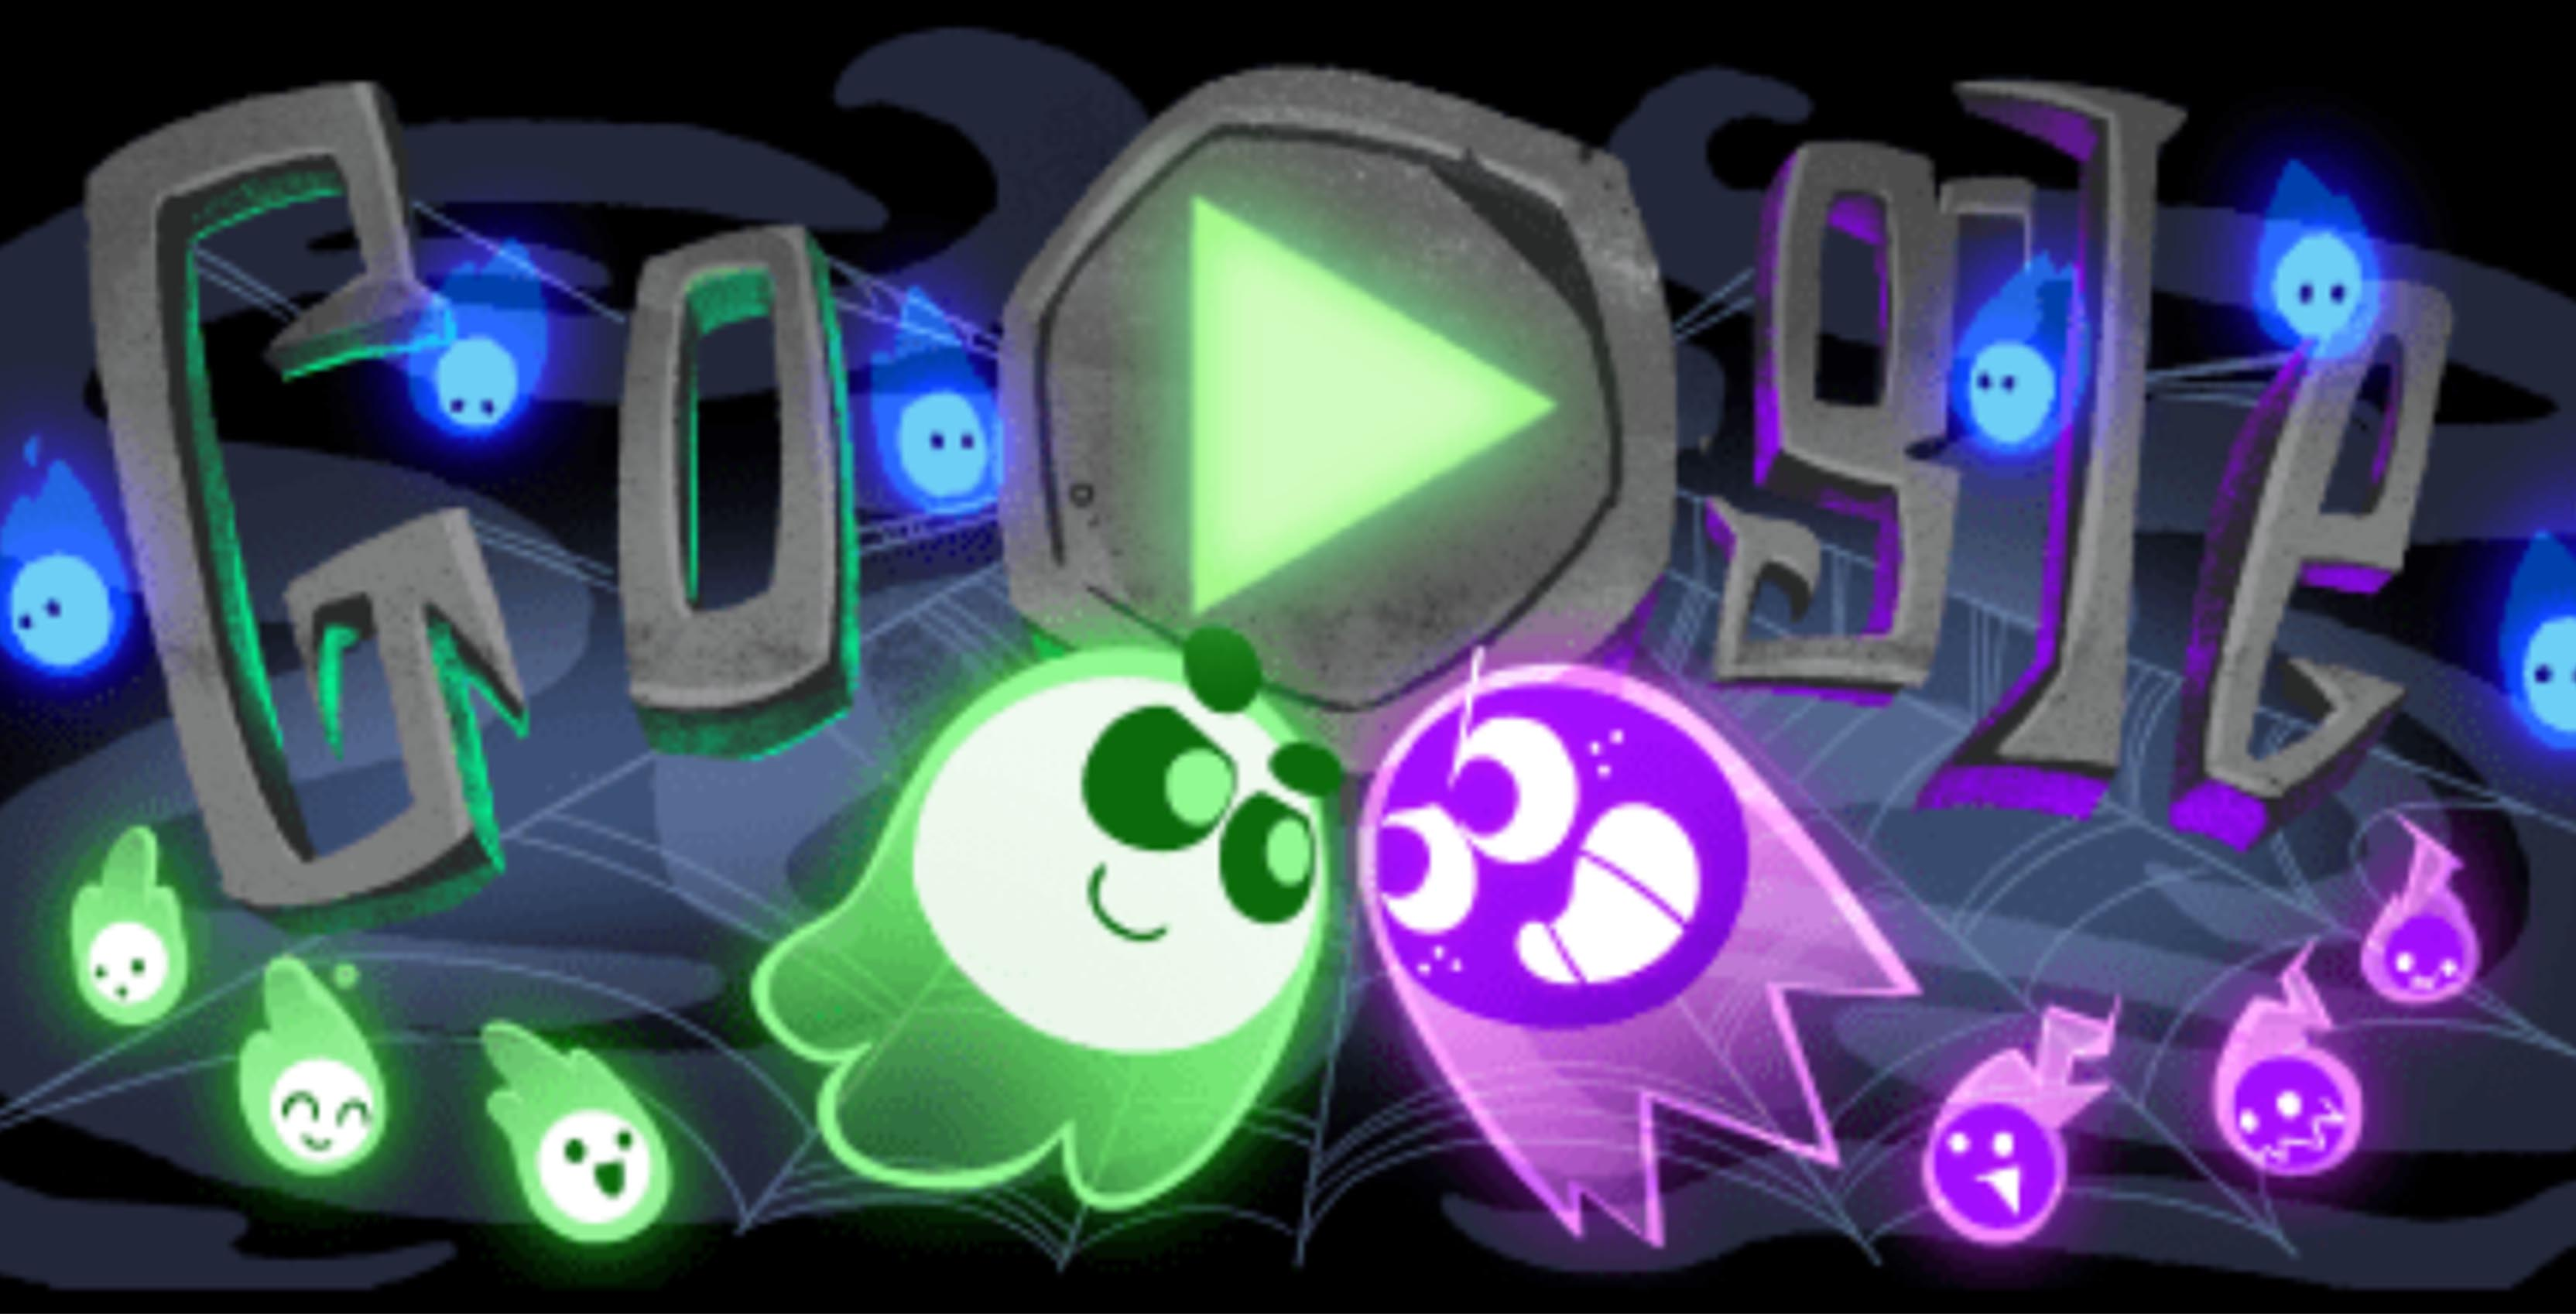 Google whipped up a cute competitive ghost game for Halloween